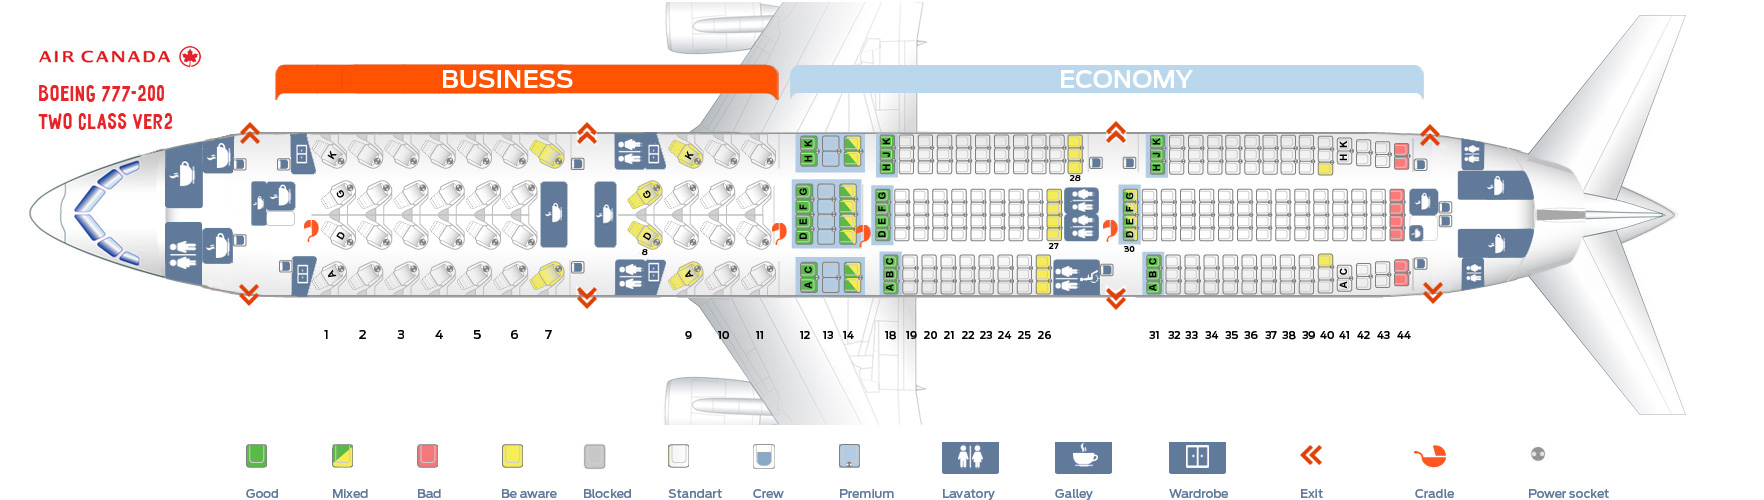 Seat map Air Canada Boeing-777-200 Two Class version 2